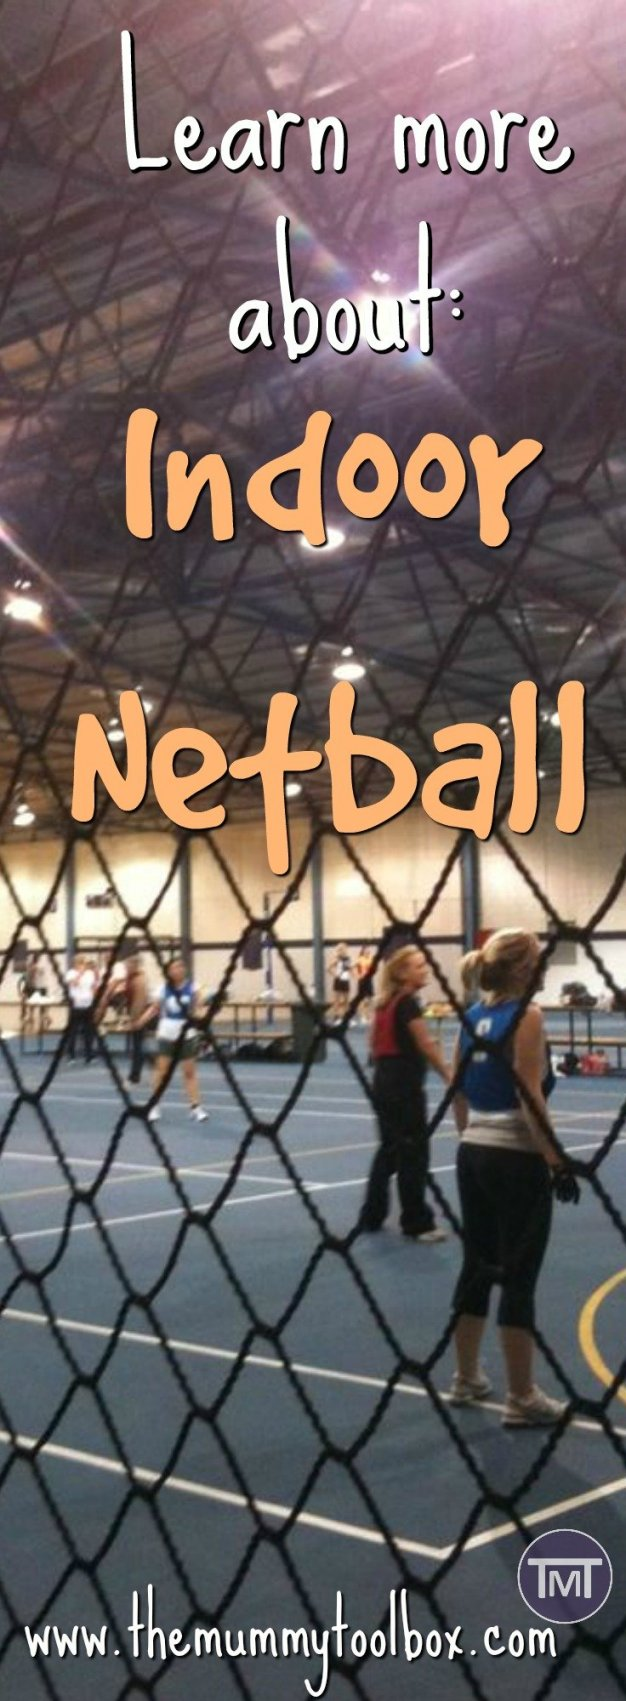 With many variations across the globe, indoor netball is an exciting variation on the traditional outdoor netball, learn more about it here!